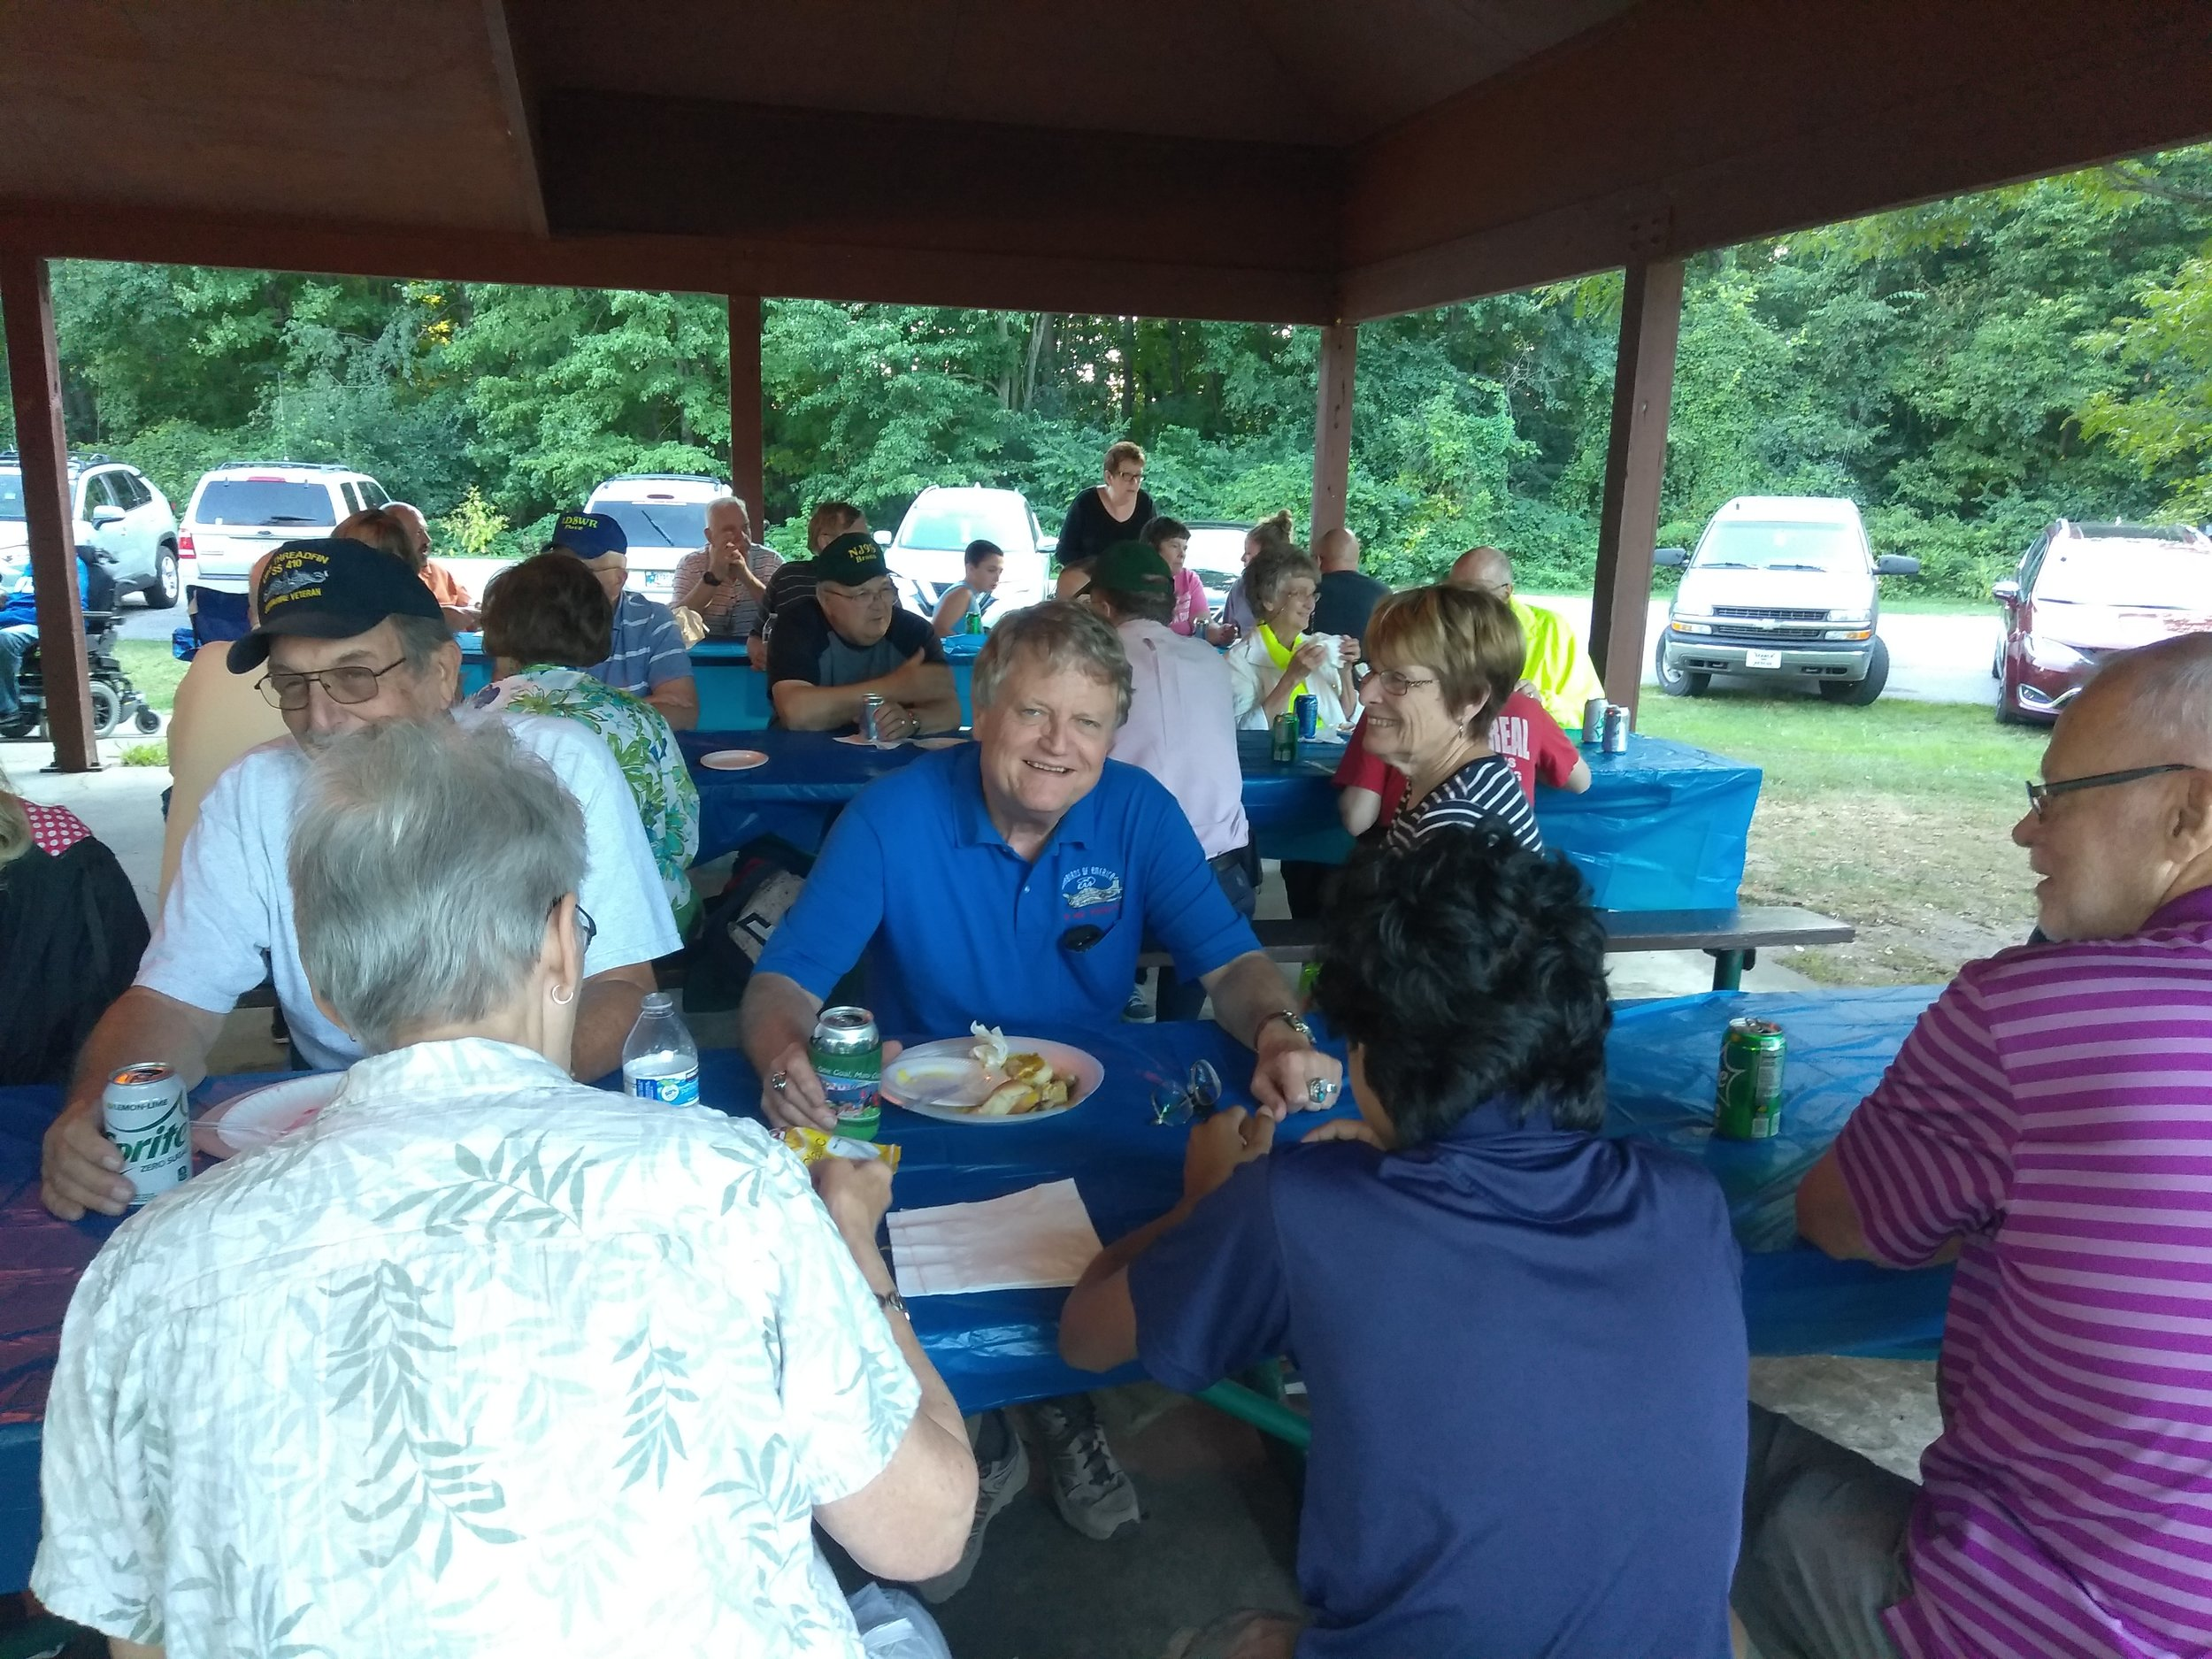 President Keith Wishmeier WA9S taking a break from operating QRP and enjoying the company of several club members.